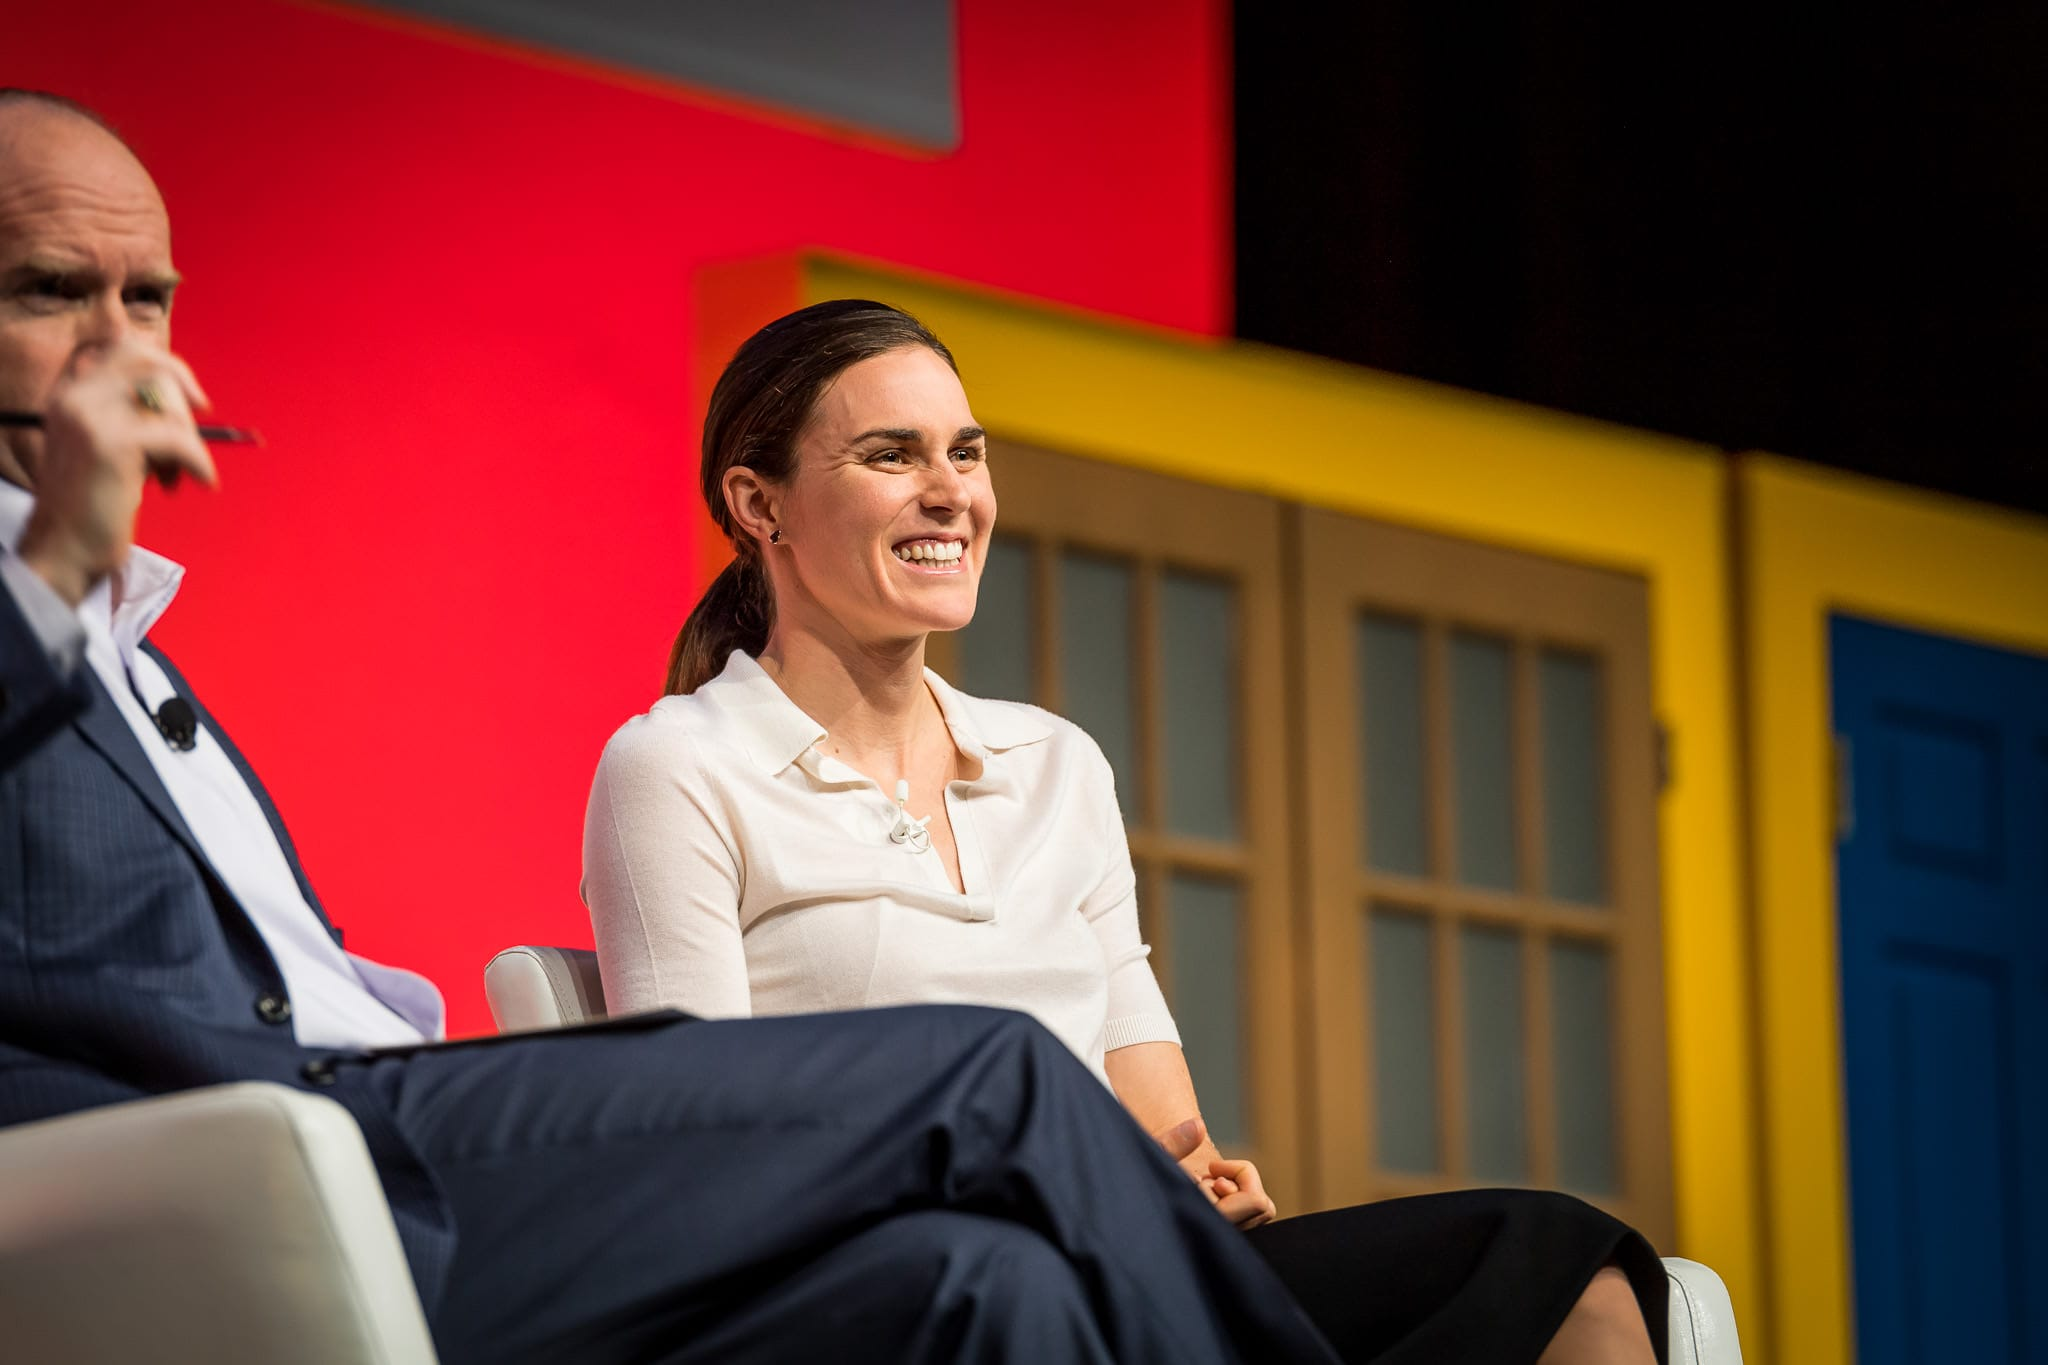 Olympic gold medal winner Gwen Jorgensen laughs during her talk at the EY Milestones corporate event in Orlando, FL